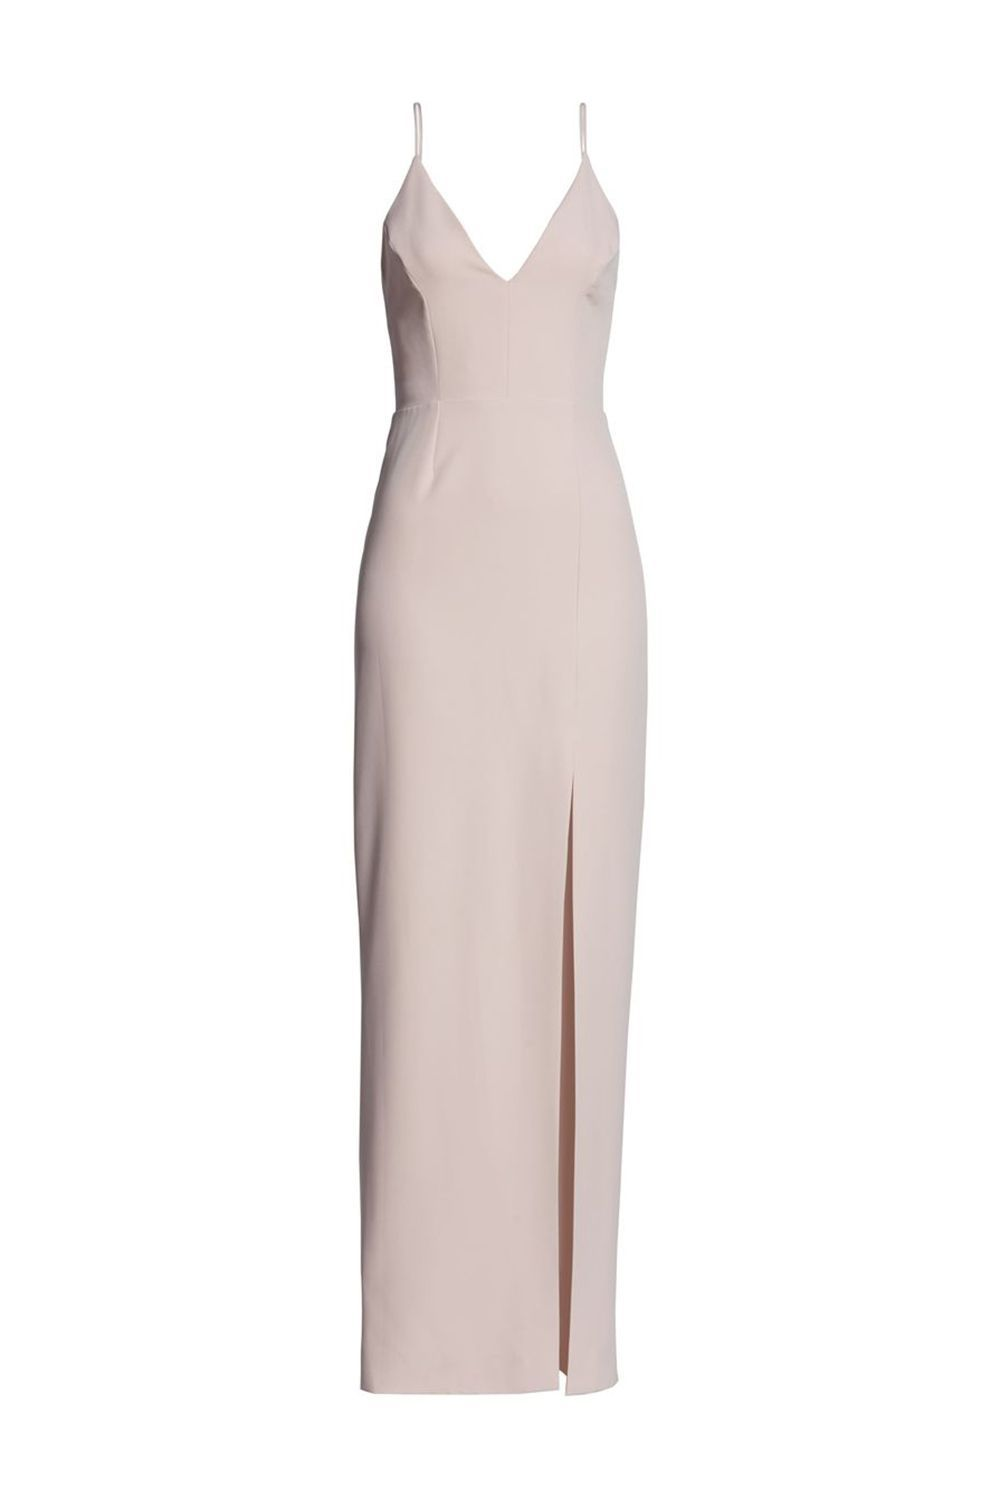 Simplest (Yet Still Chic) Scuba Crepe Evening Dress WAYF nordstrom.com $148.00 SHOP IT This floor-length, thin strapped dress masters understated glamour. Made in a forgiving scuba material, it'll be a flattering choice to don at formal weddings.